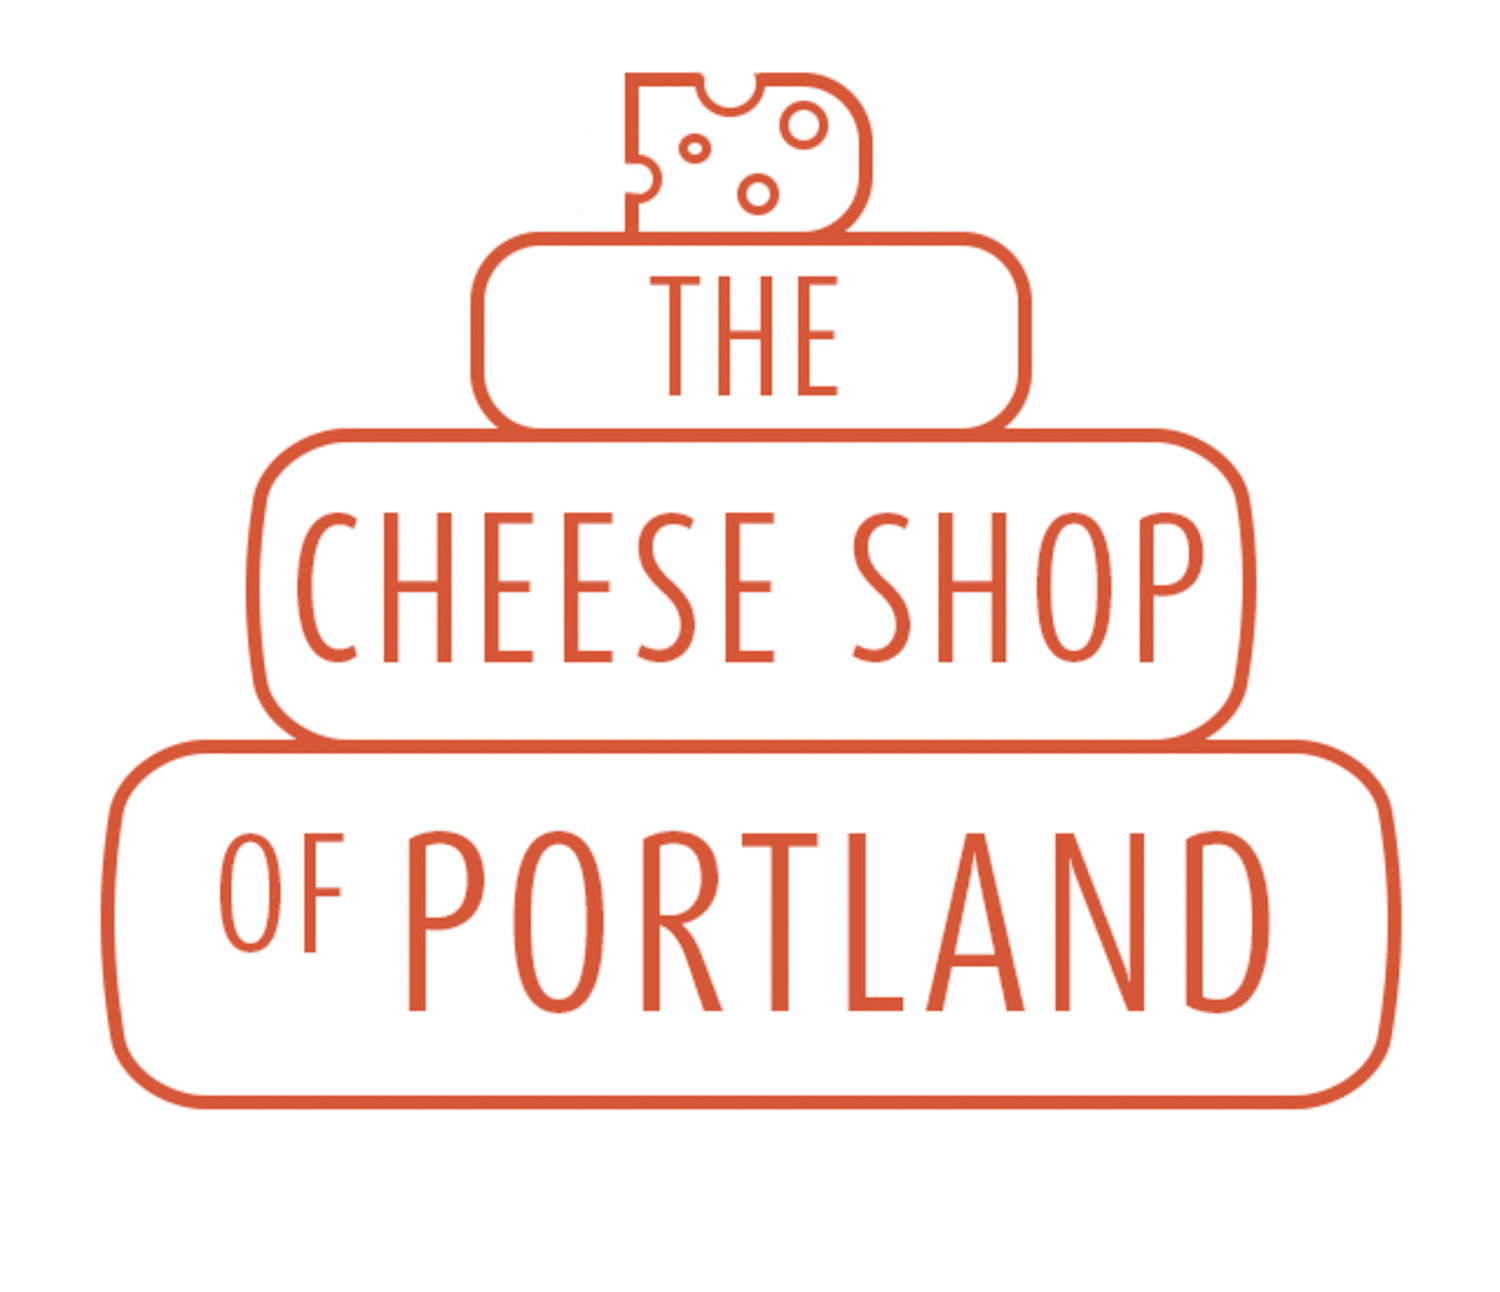 The Cheese Shop of Portland